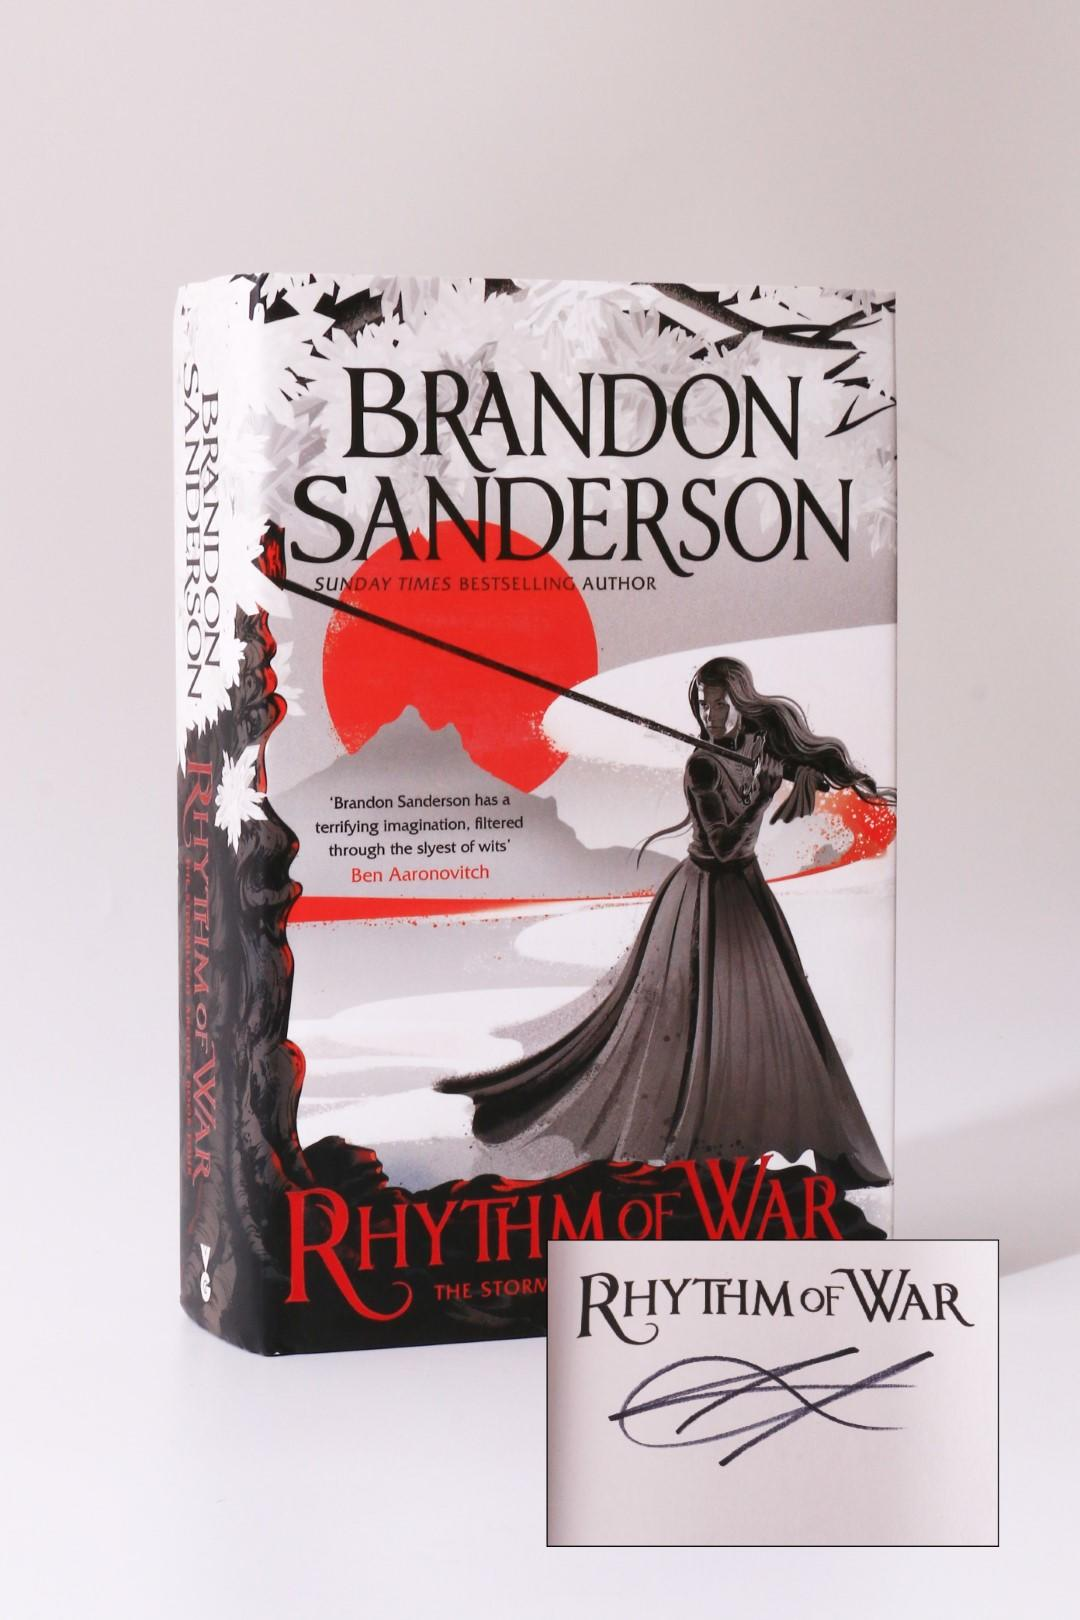 Brandon Sanderson - Rhythm of War - Orion, 2020, Signed First Edition.